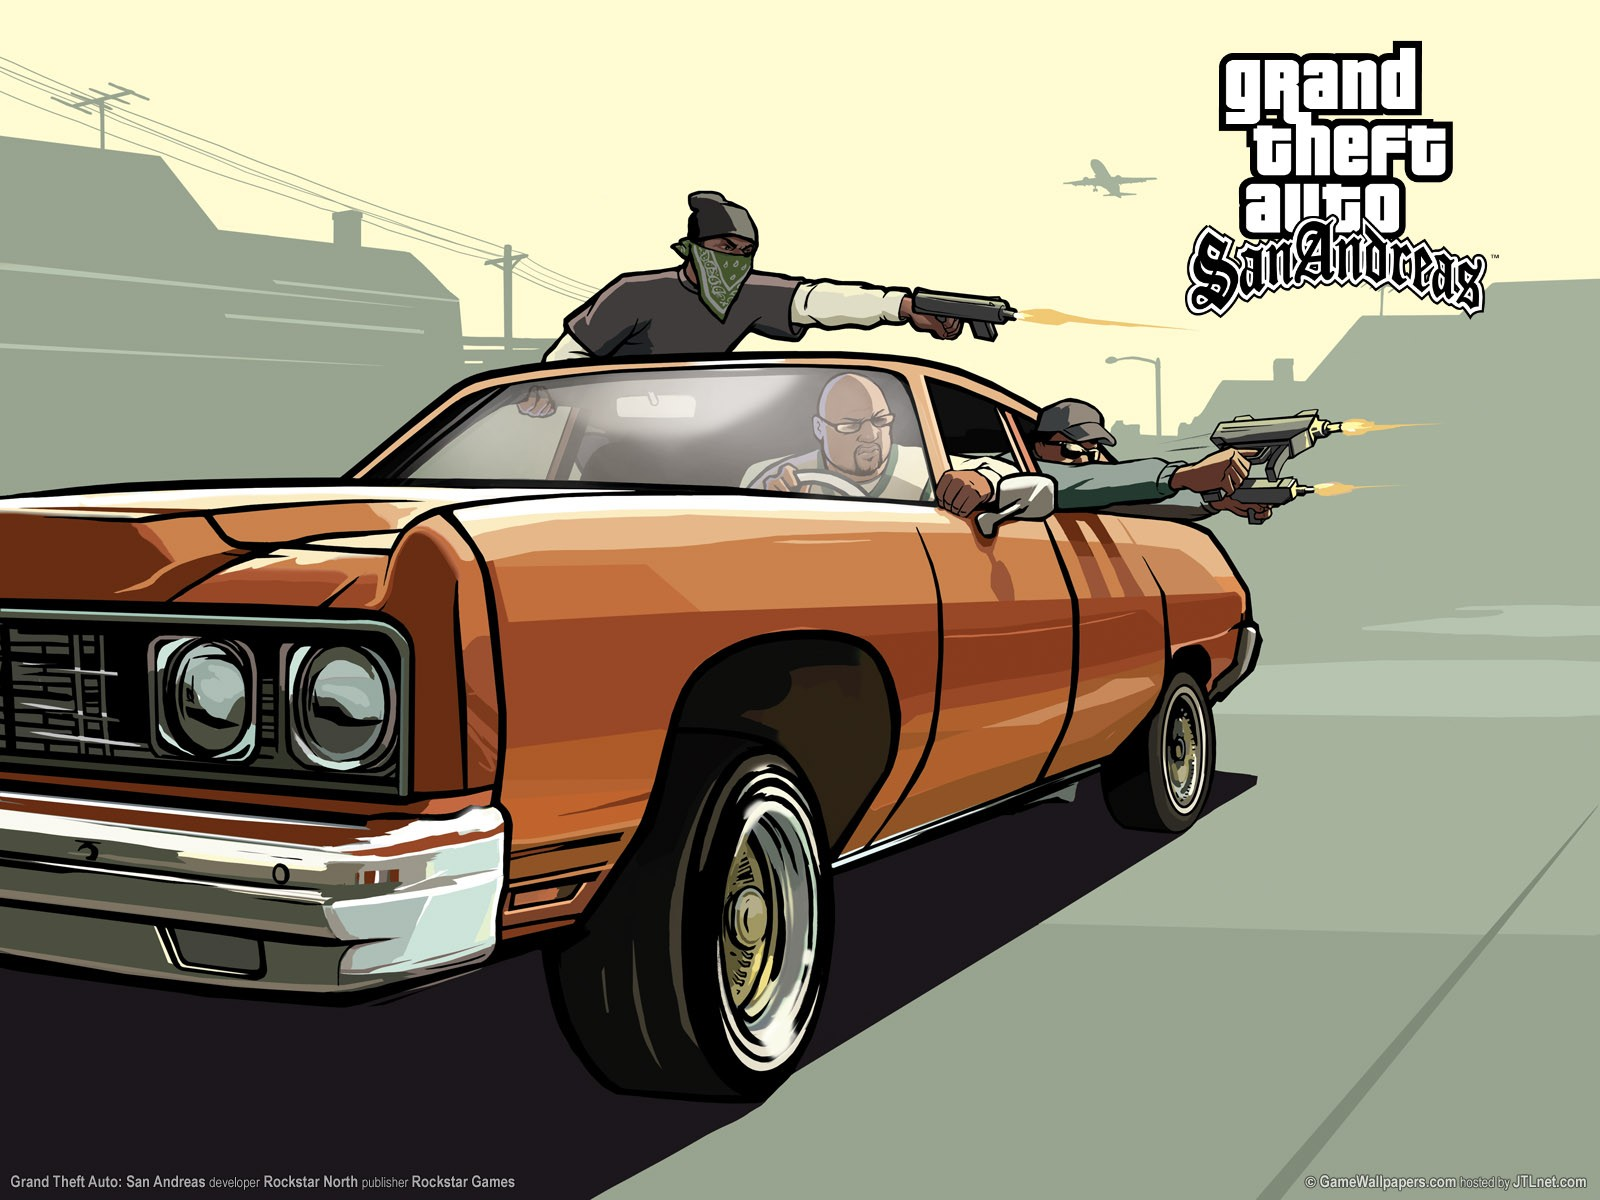 Andreas wallpaper gta san andreas gta 5 gta san andreas gta san